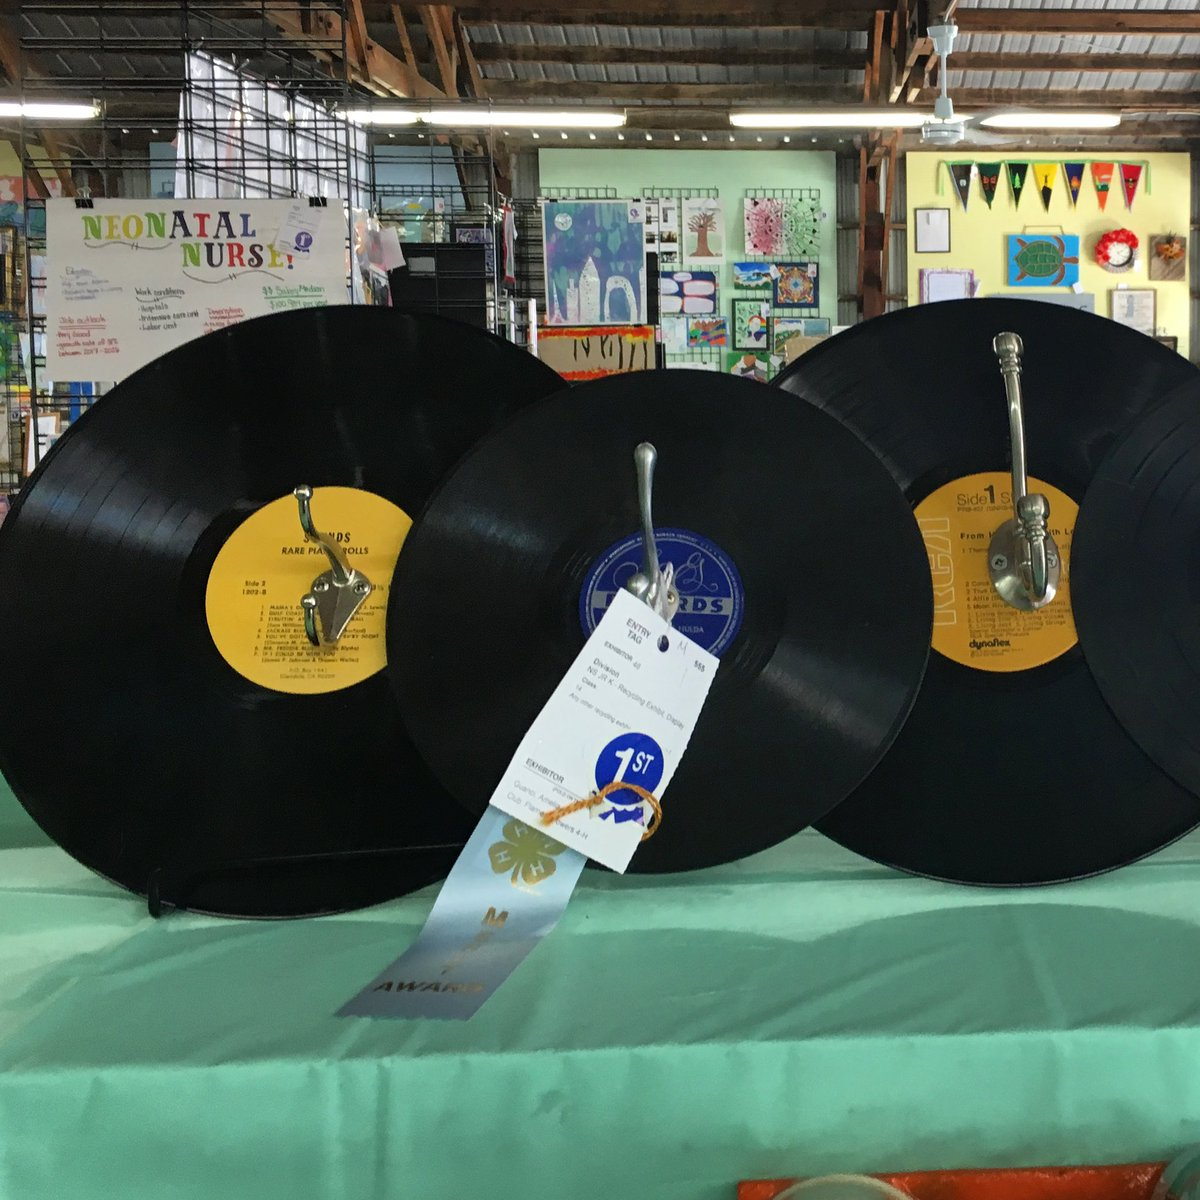 A new spin on repurposing. Check out Junior Class exhibits at #walcofair2020 #sept2thru7 #elkhornwi https://t.co/bMMG6QGkiw